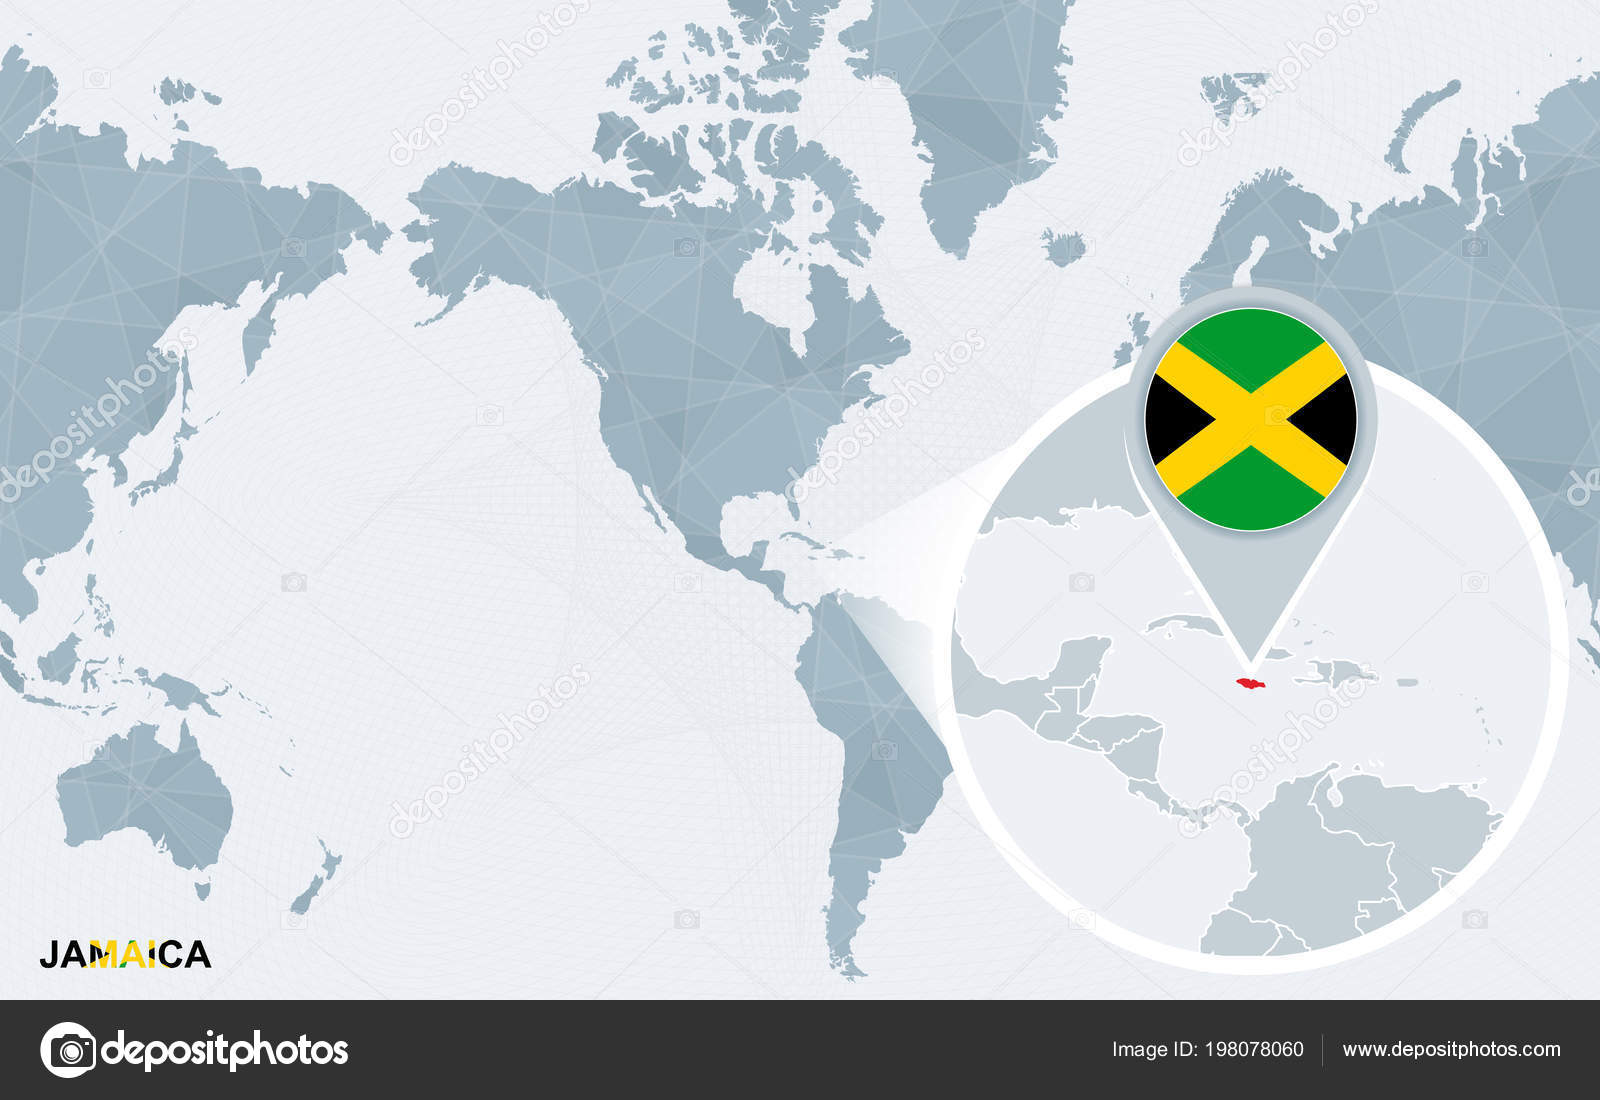 World Map Centered America Magnified Jamaica Blue Flag Map ...